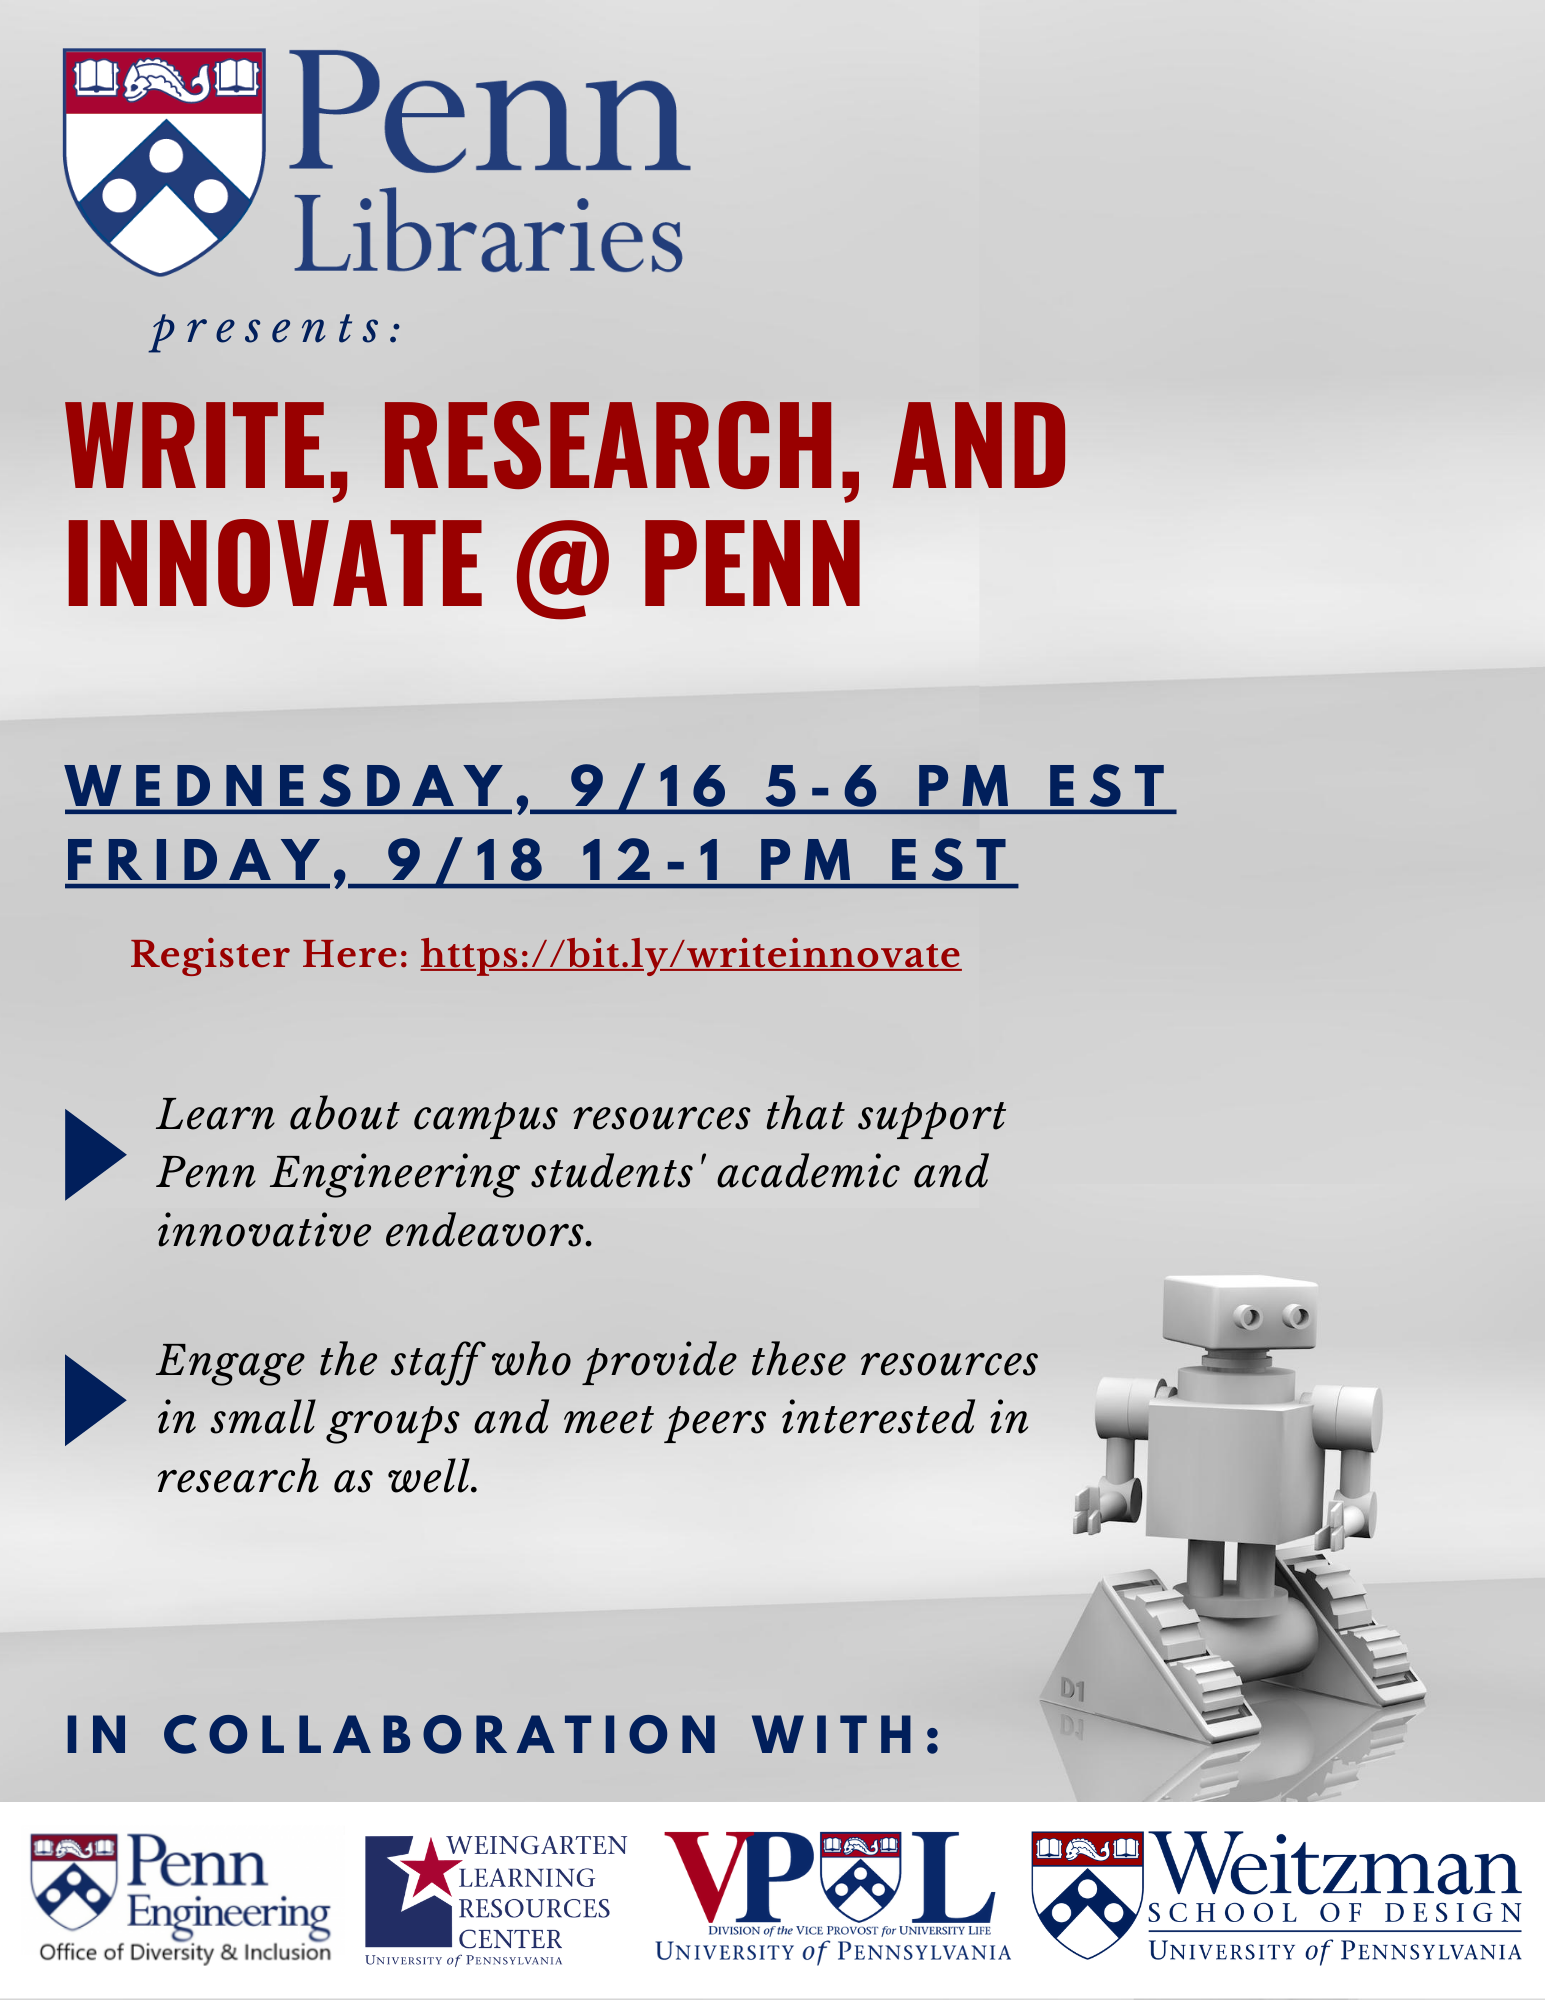 Write, Research, and Innovate at Penn